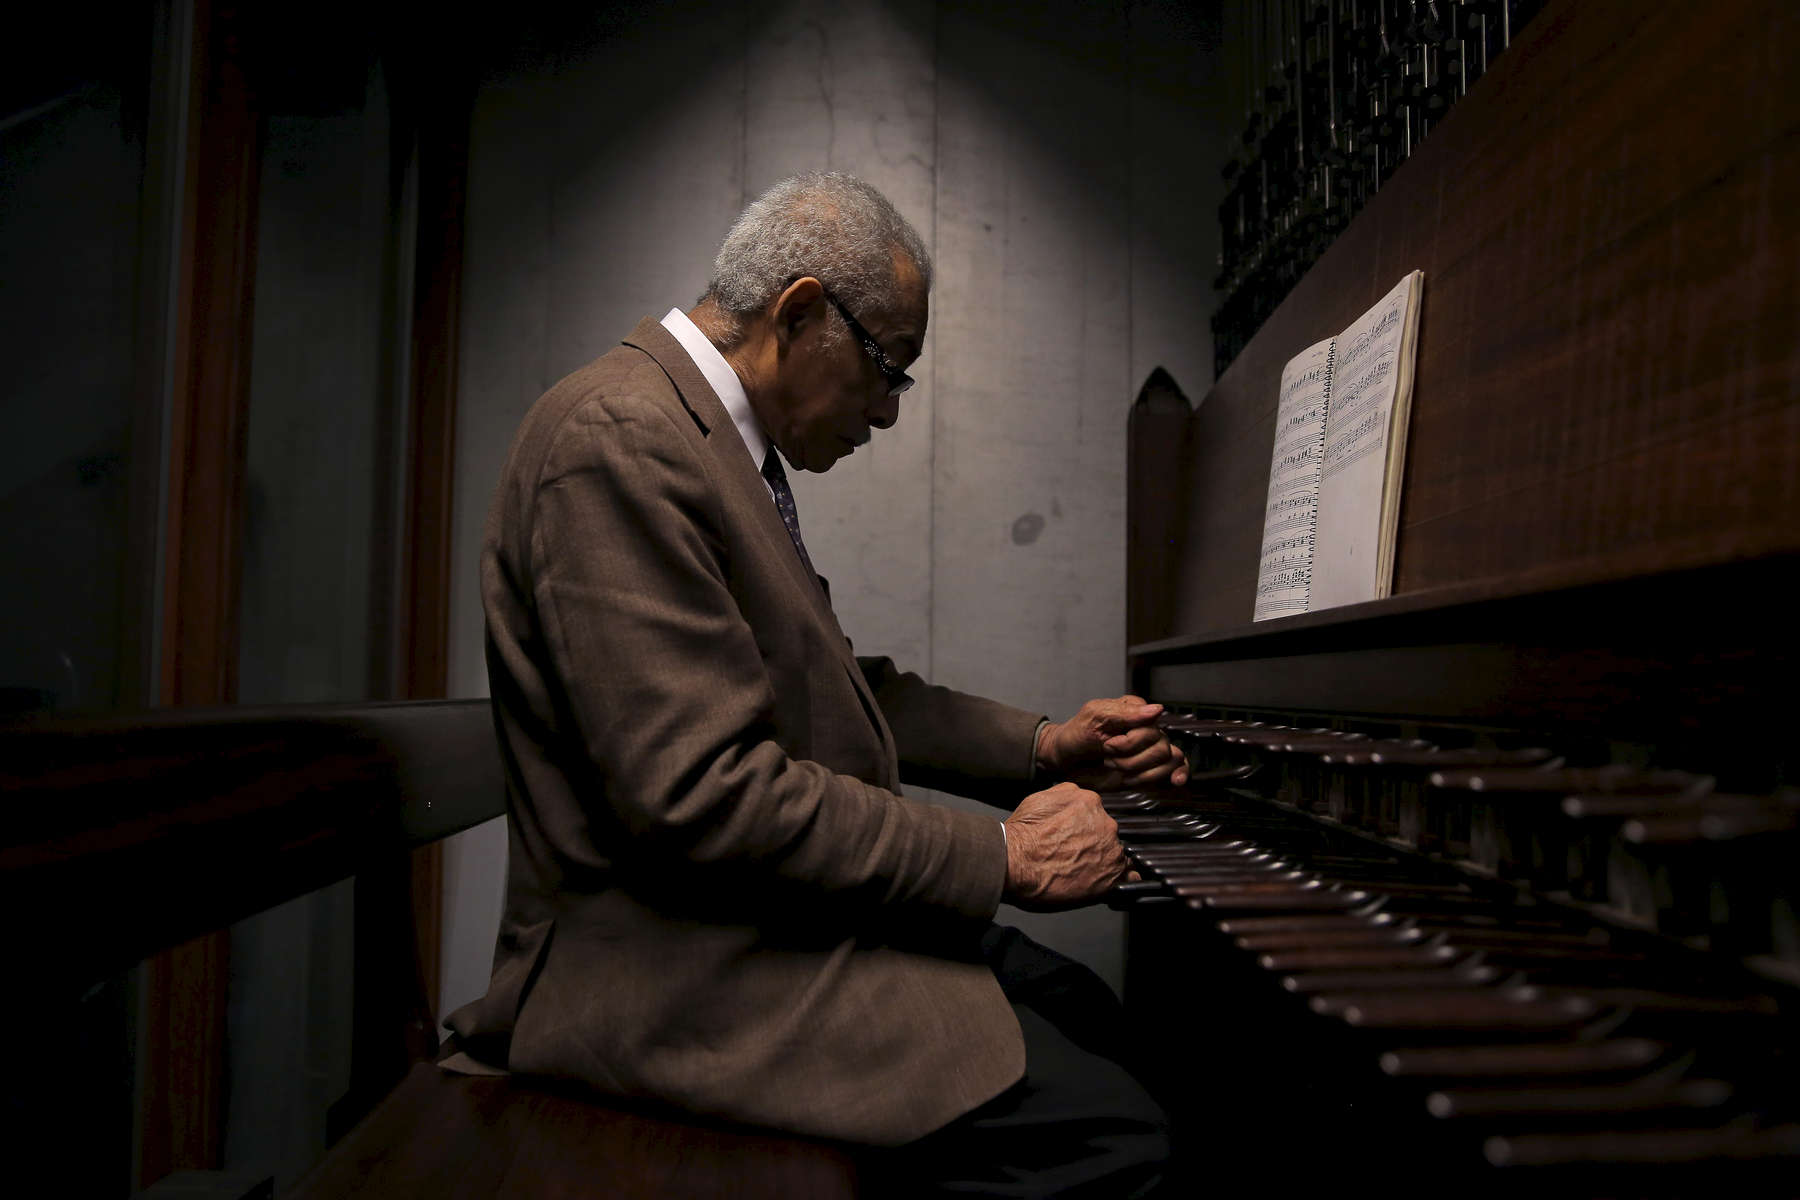 Riverside Church Carillonneur Dionisio Lind, 83, plays the carillon at Riverside Church in New York during the morning service on Sunday, January 18, 2015. The carillon at Riverside Church consists of of 72 bells ranging in weight from 10 pounds to 20 tons, all of which are housed atop a 392 foot tower. CREDIT:  Michael Appleton for The New York Times